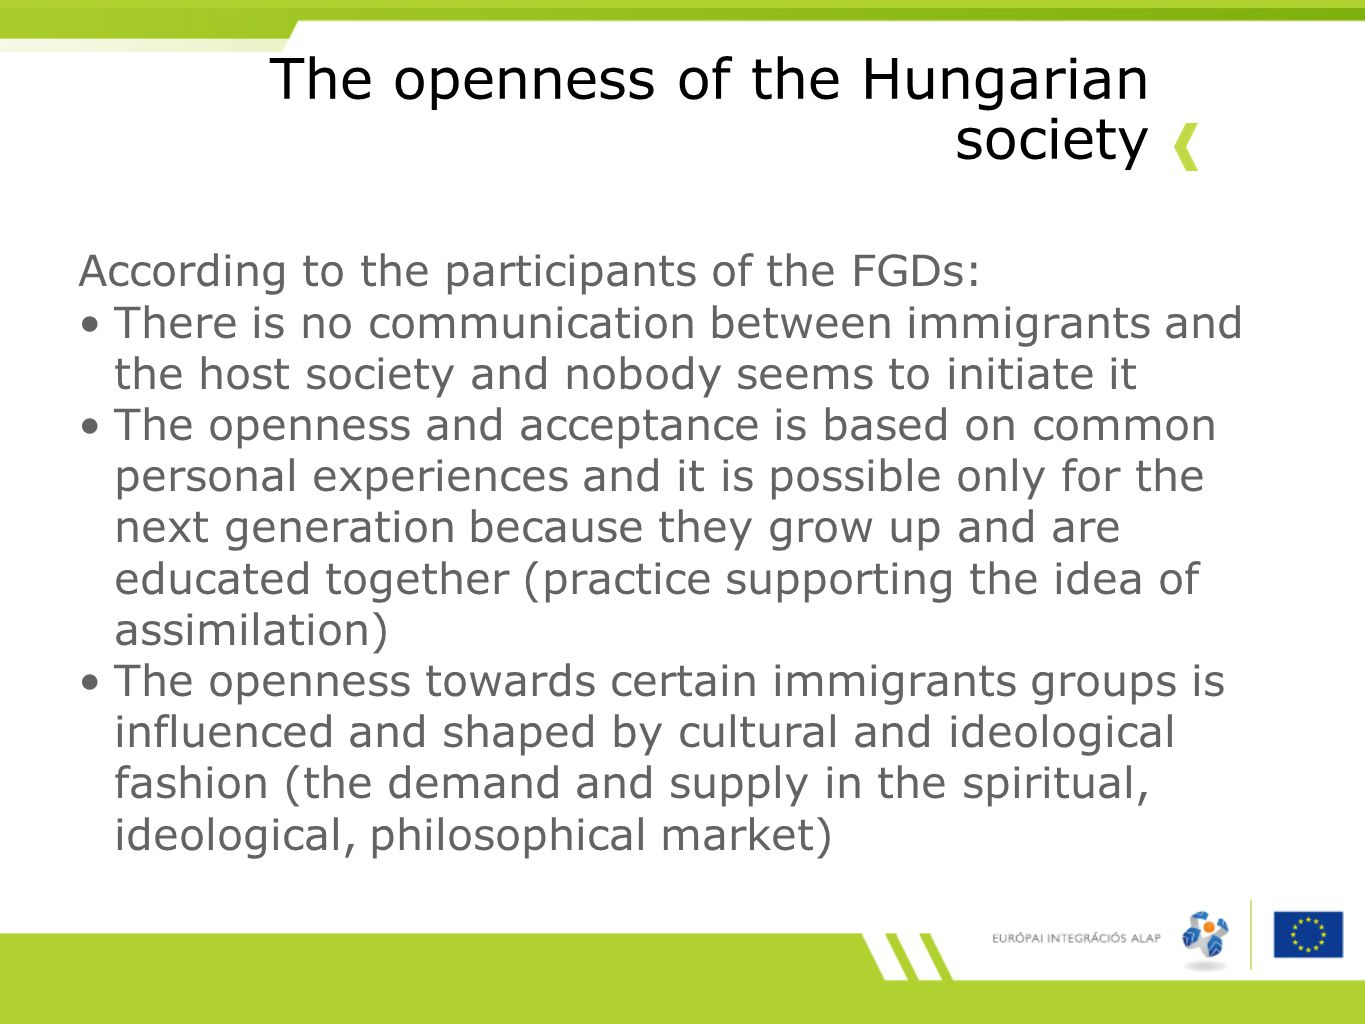 The openness of the Hungarian society According to the participants of the FGDs: There is no communication between immigrants and the host society and nobody seems to initiate it The openness and acceptance is based on common personal experiences and it is possible only for the next generation because they grow up and are educated together (practice supporting the idea of assimilation) The openness towards certain immigrants groups is influenced and shaped by cultural and ideological fashion (the demand and supply in the spiritual, ideological, philosophical market)